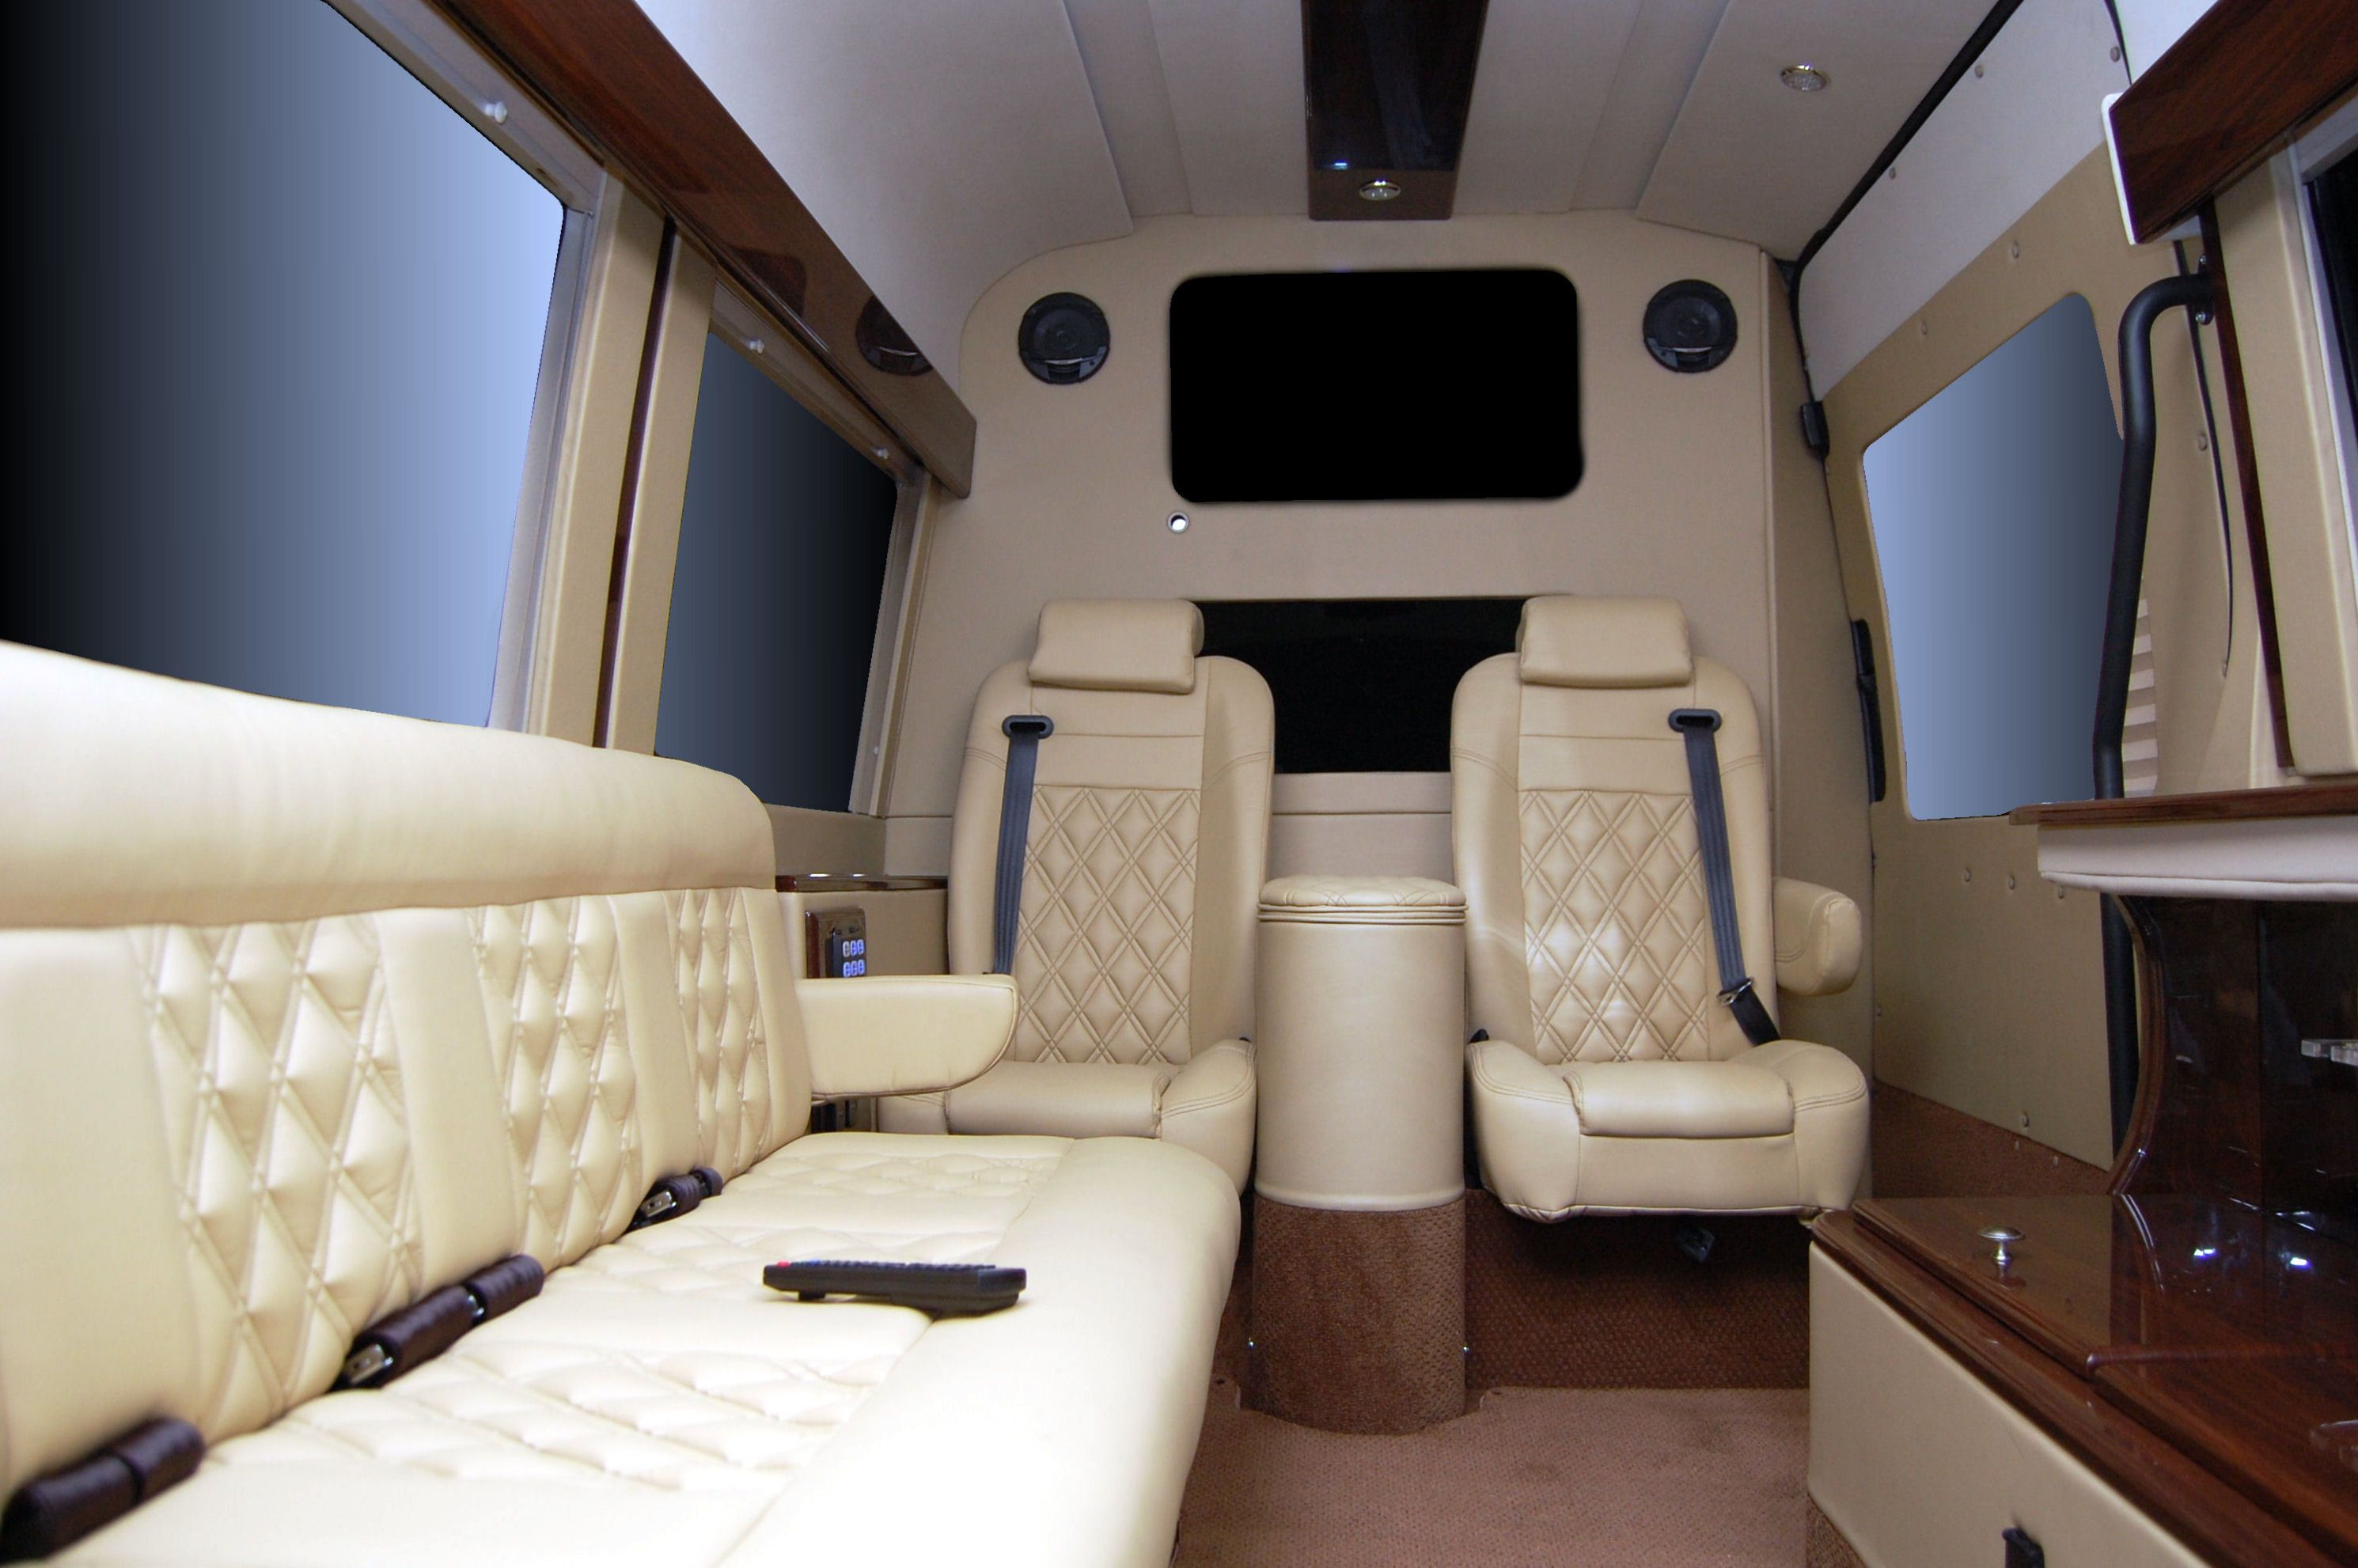 Battisti Customs Mercedes sprinter executive office edition.